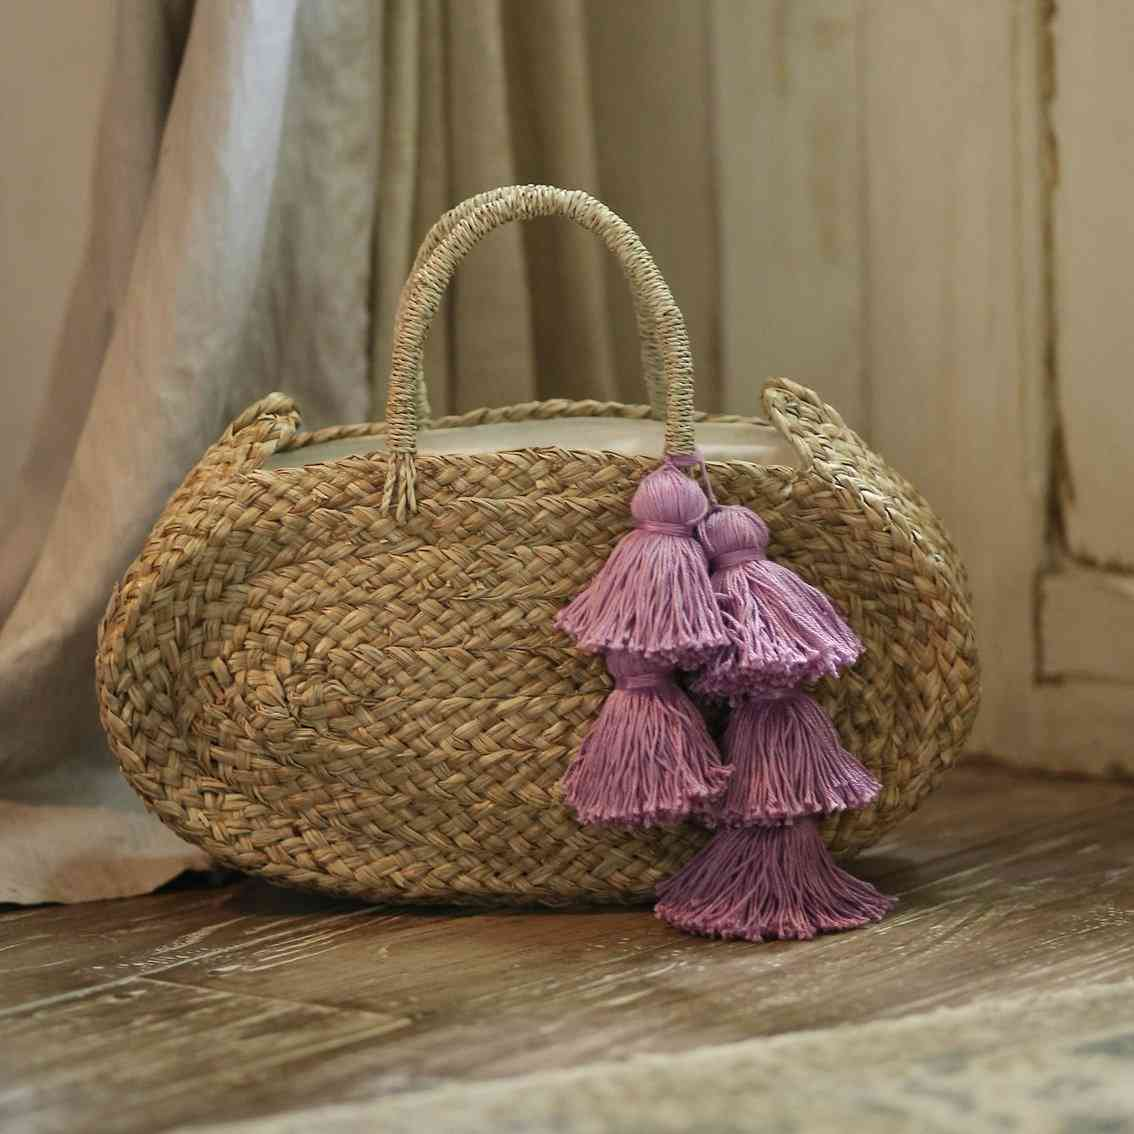 Oval Shaped, Woven Beach Straw Tote Bag With Lavender Tassels